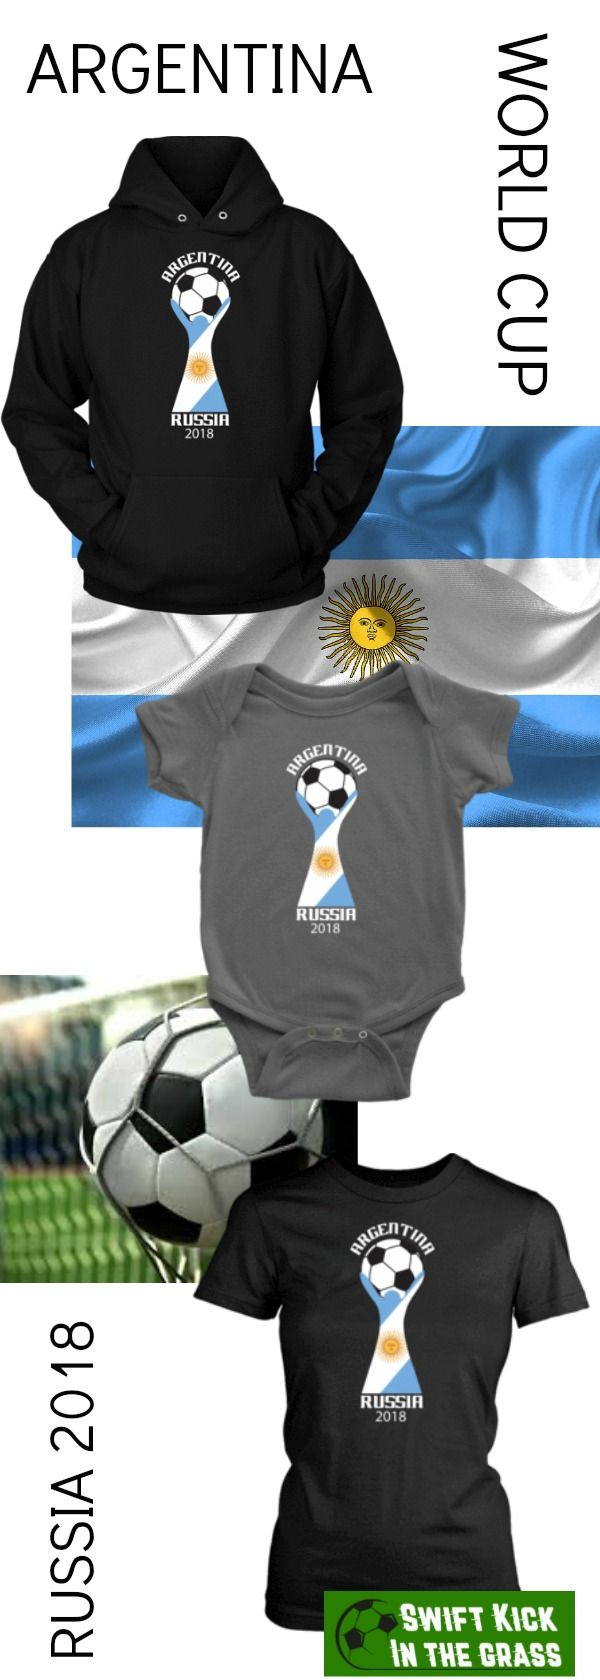 FIFA World Cup Argentina Victory in 2018 Russia. Men's, Women's and Youth Shirts. Rep your team in style. #Argentina #Football #Sports #Futbol #Worldcup #Russia #Russia2018 #Livescore #Fifa #Mls #Freekick #Goals #Goal #Soccer #Cleats #Magista  #Golazos #Bundesliga #Fussball #Lovefootball #September #Sixpack #Instasport #Footballgame #Footballseason #Footballplayer #Footballsunday #Footballer #Soccer #Soccergame #Soccerball #Soccerlife #Soccerplayer #Soccerislife #Soccerteam #Sports